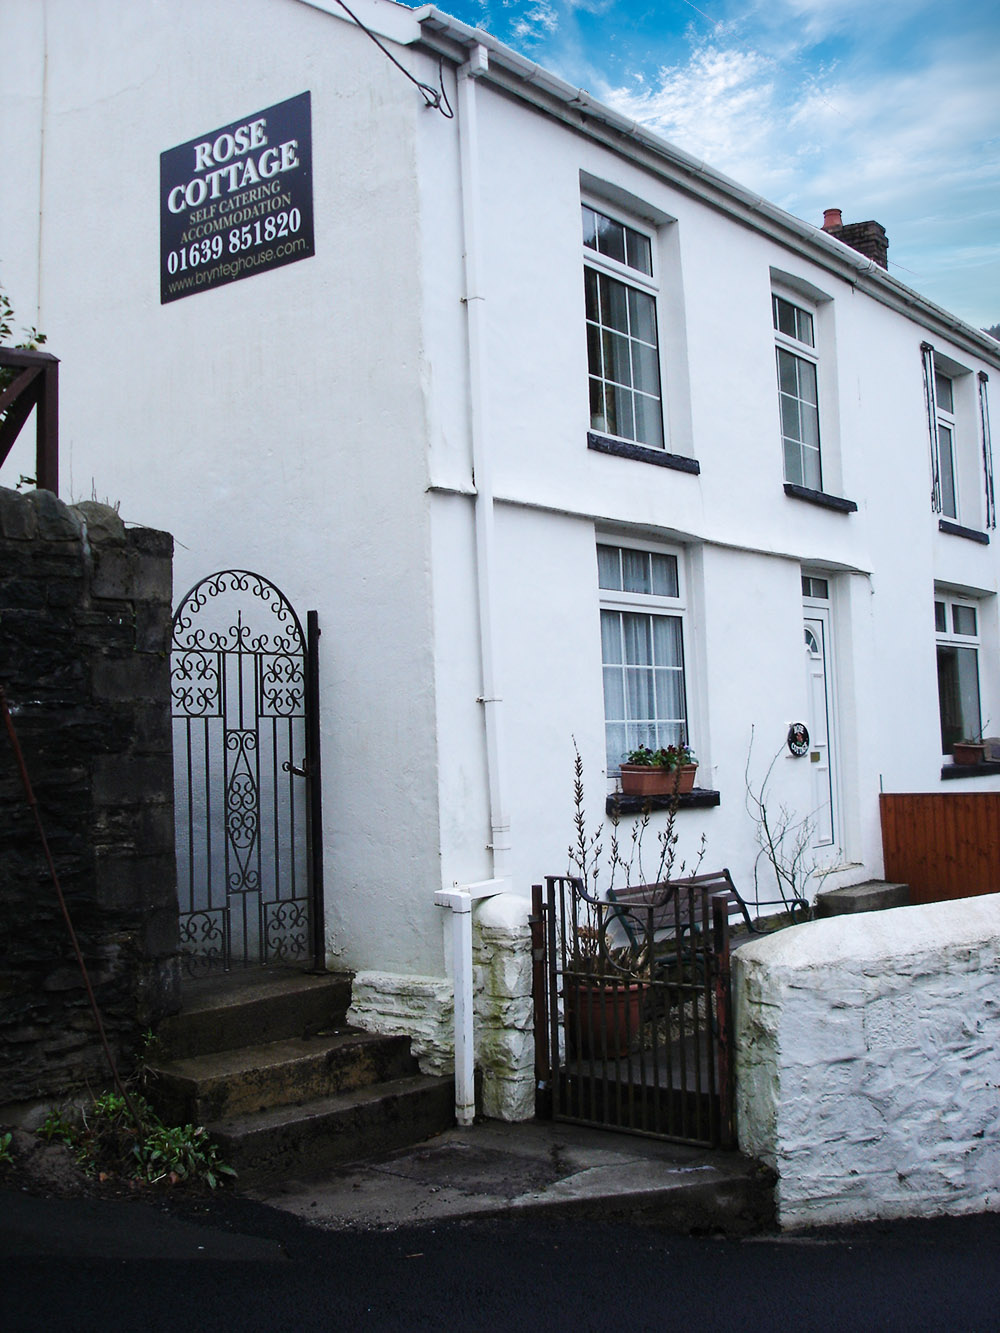 Rose Cottage Self Catering Accommodation